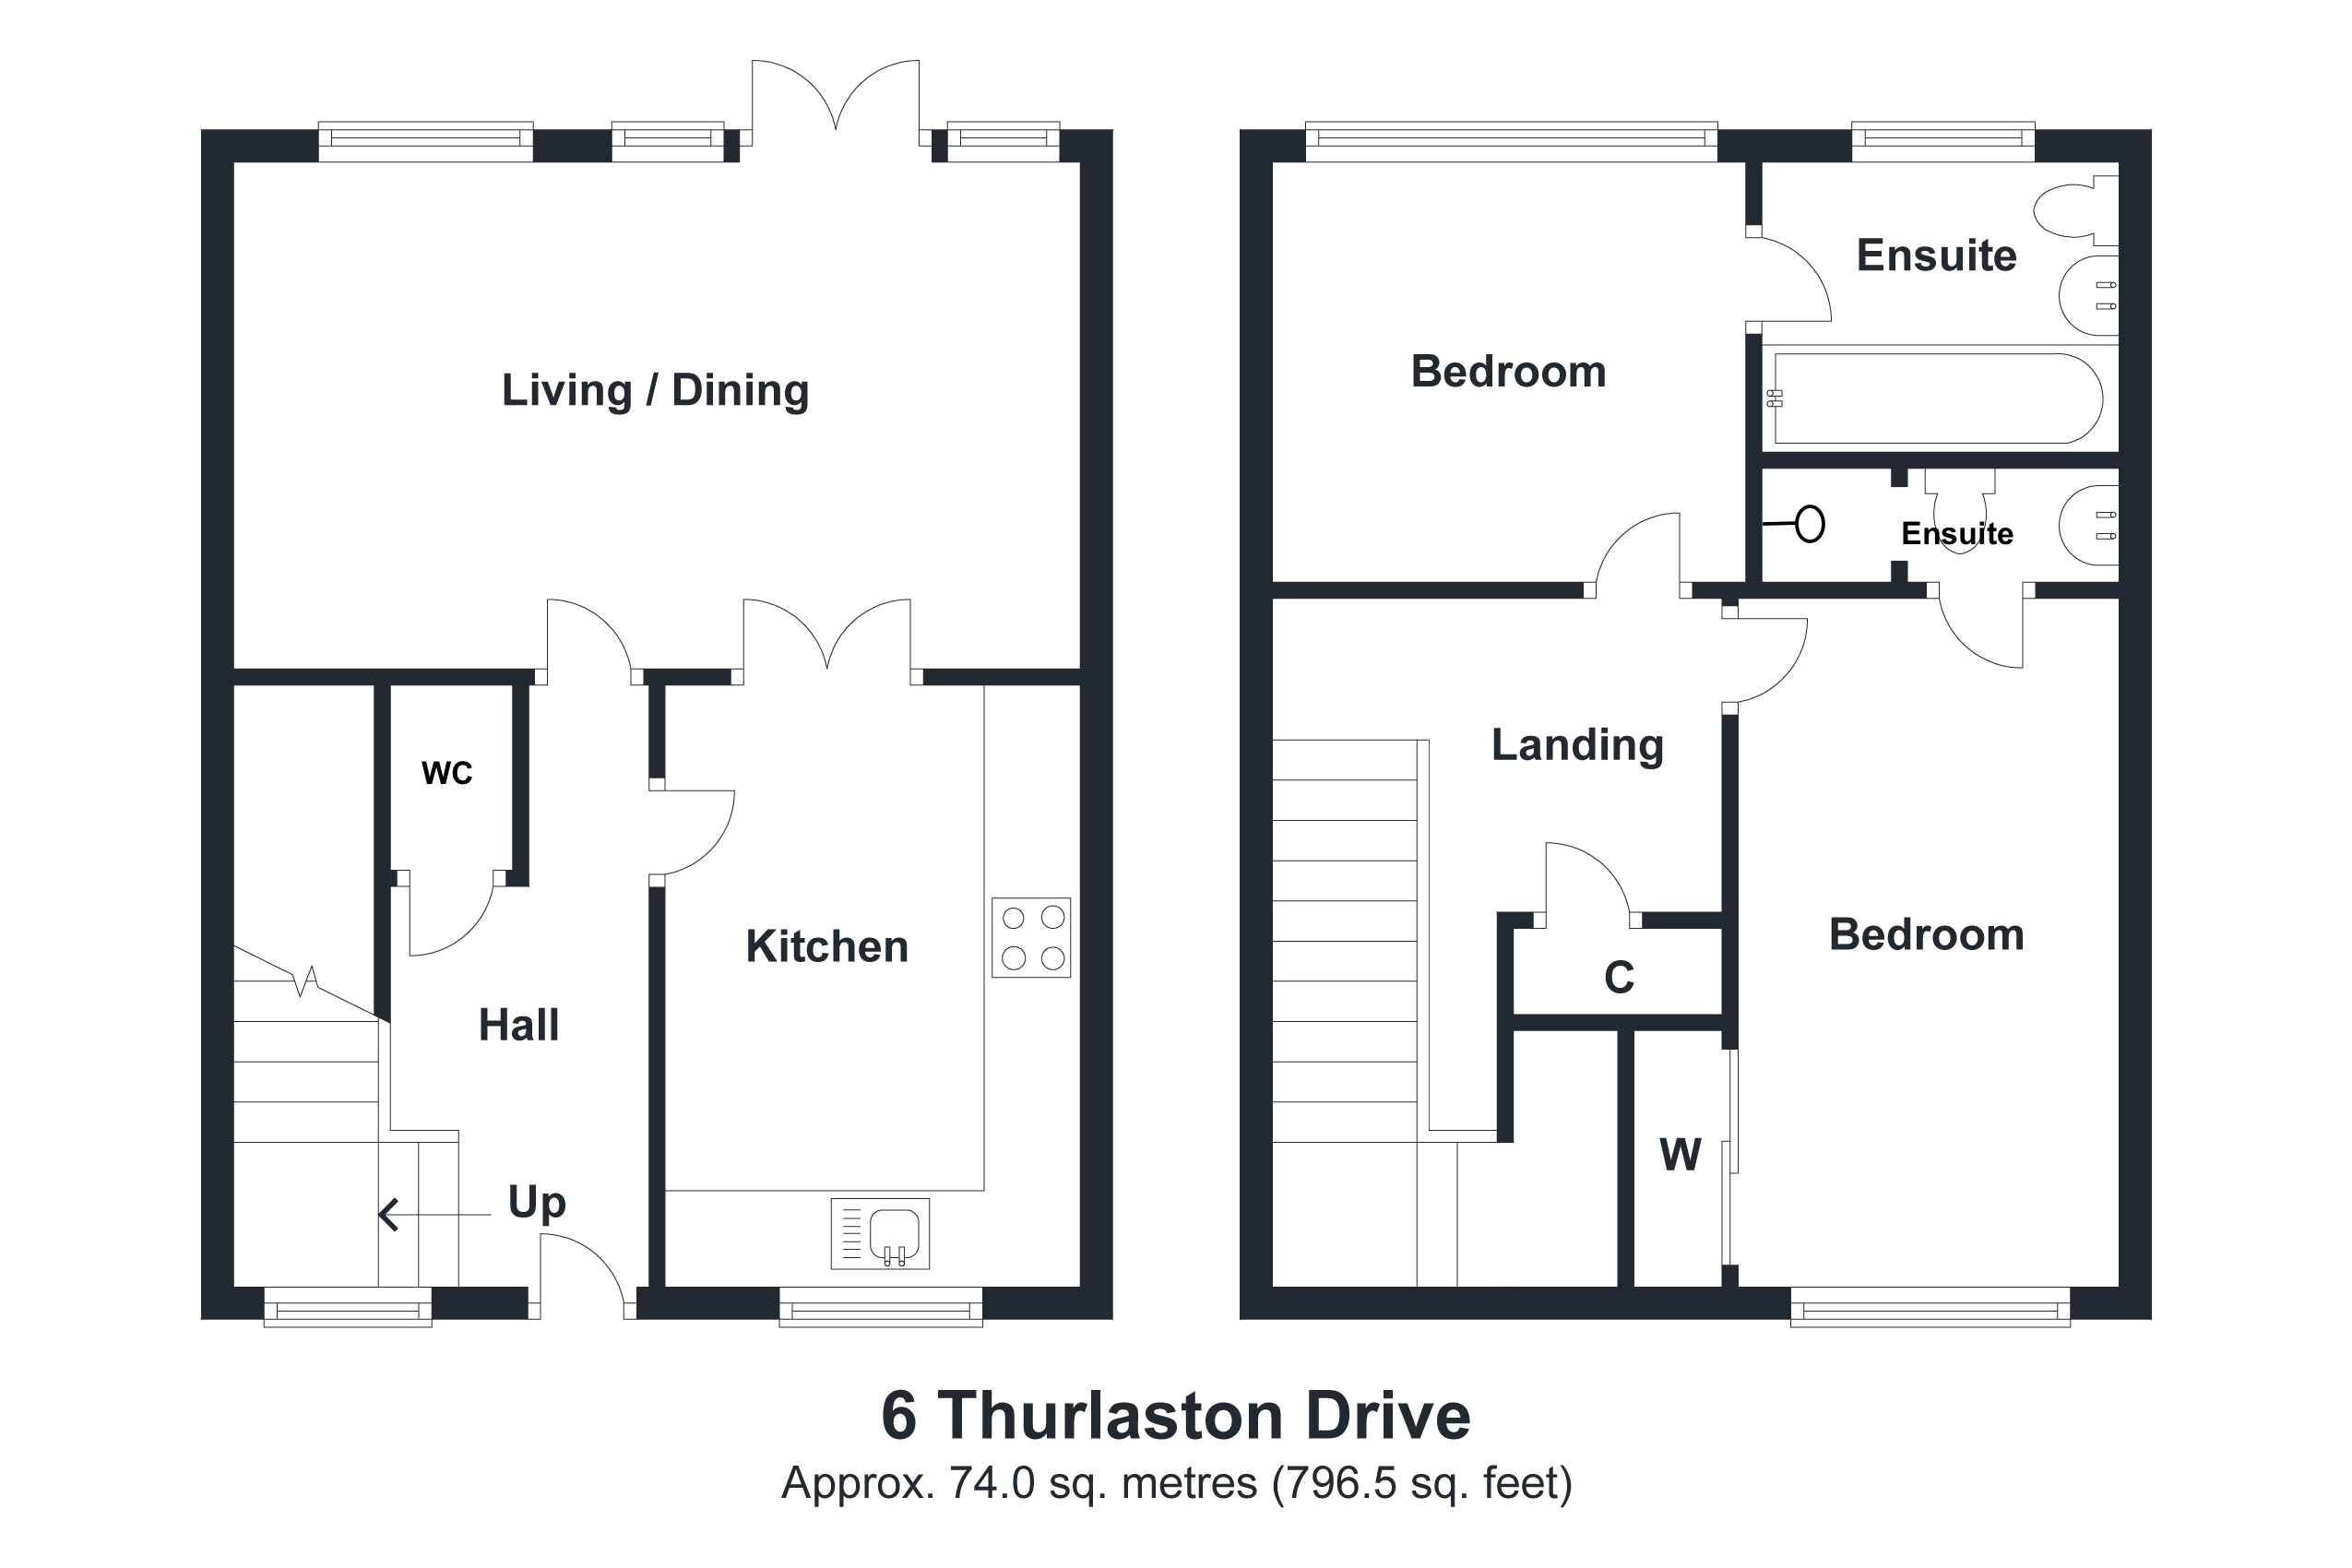 6 Thurlaston Drive Floorplan